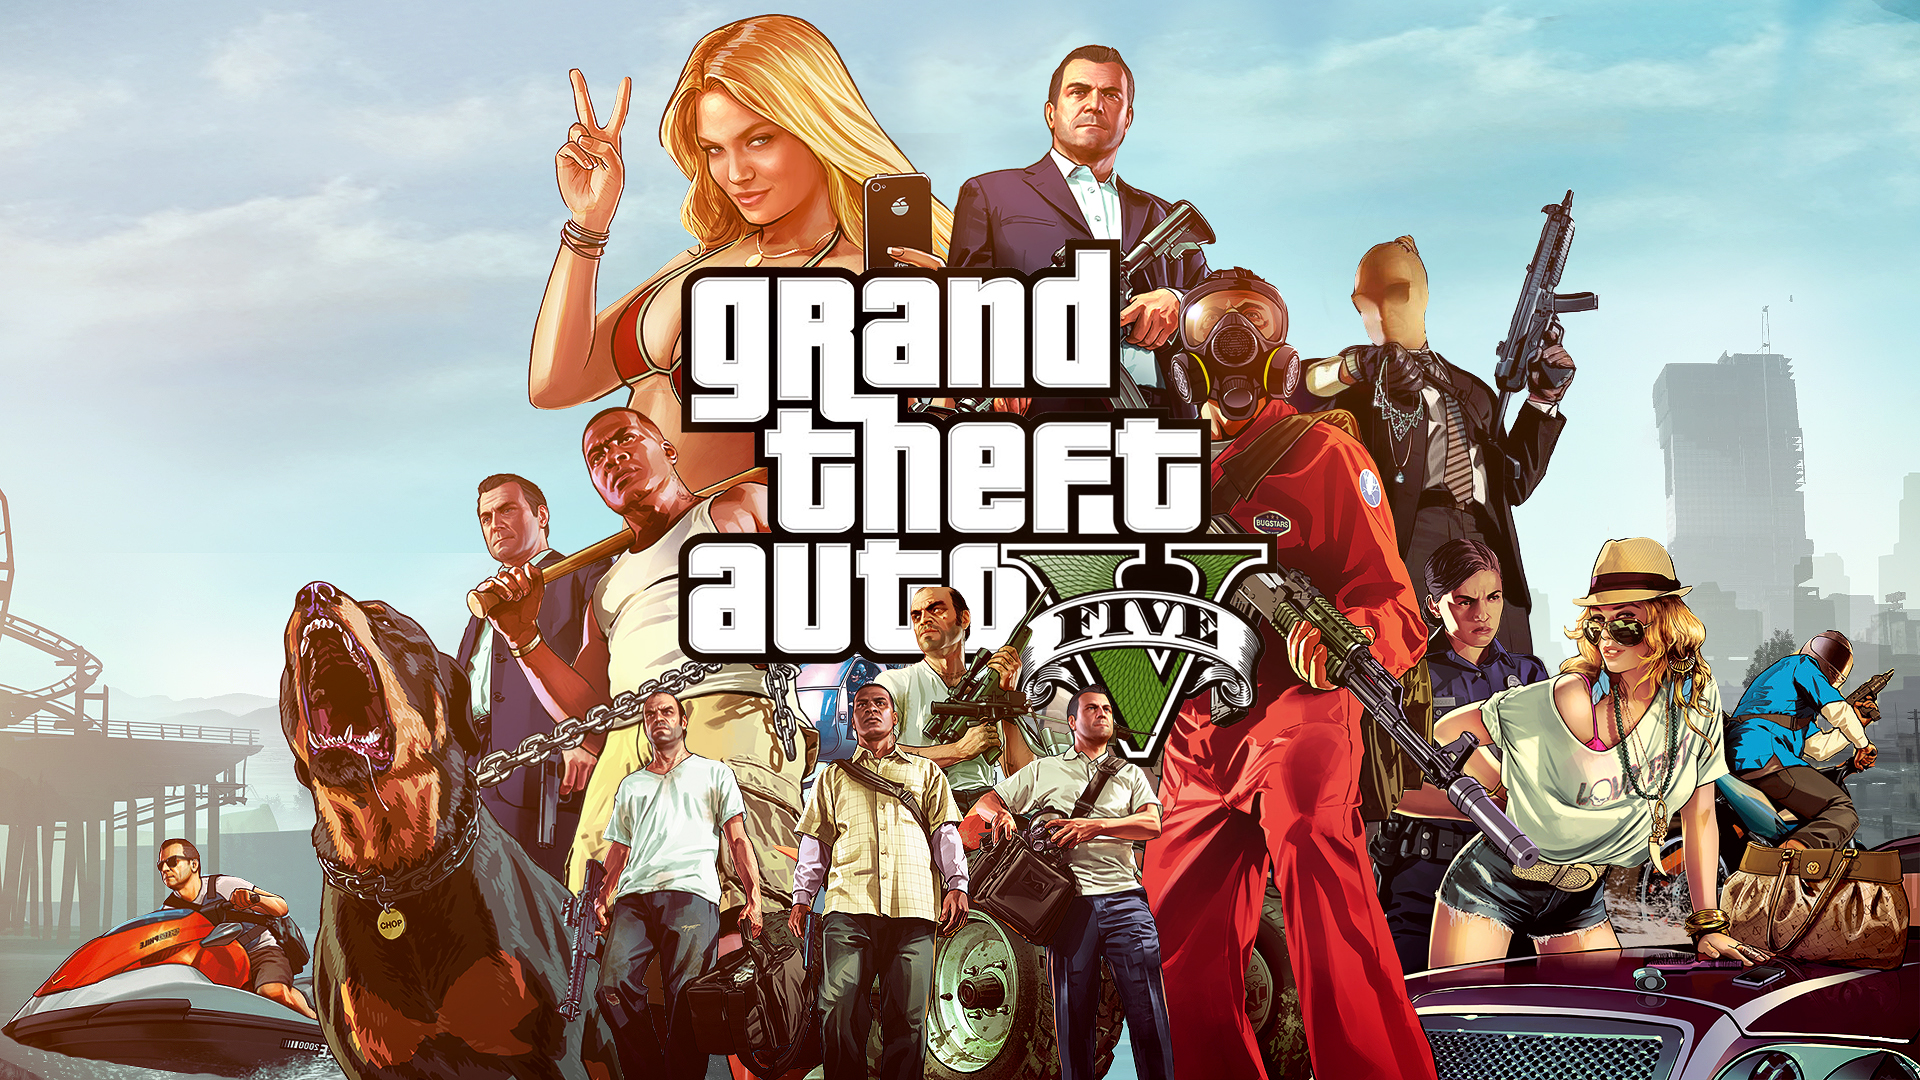 How to Configure VorpX to Play GTA V on the Oculus Rift